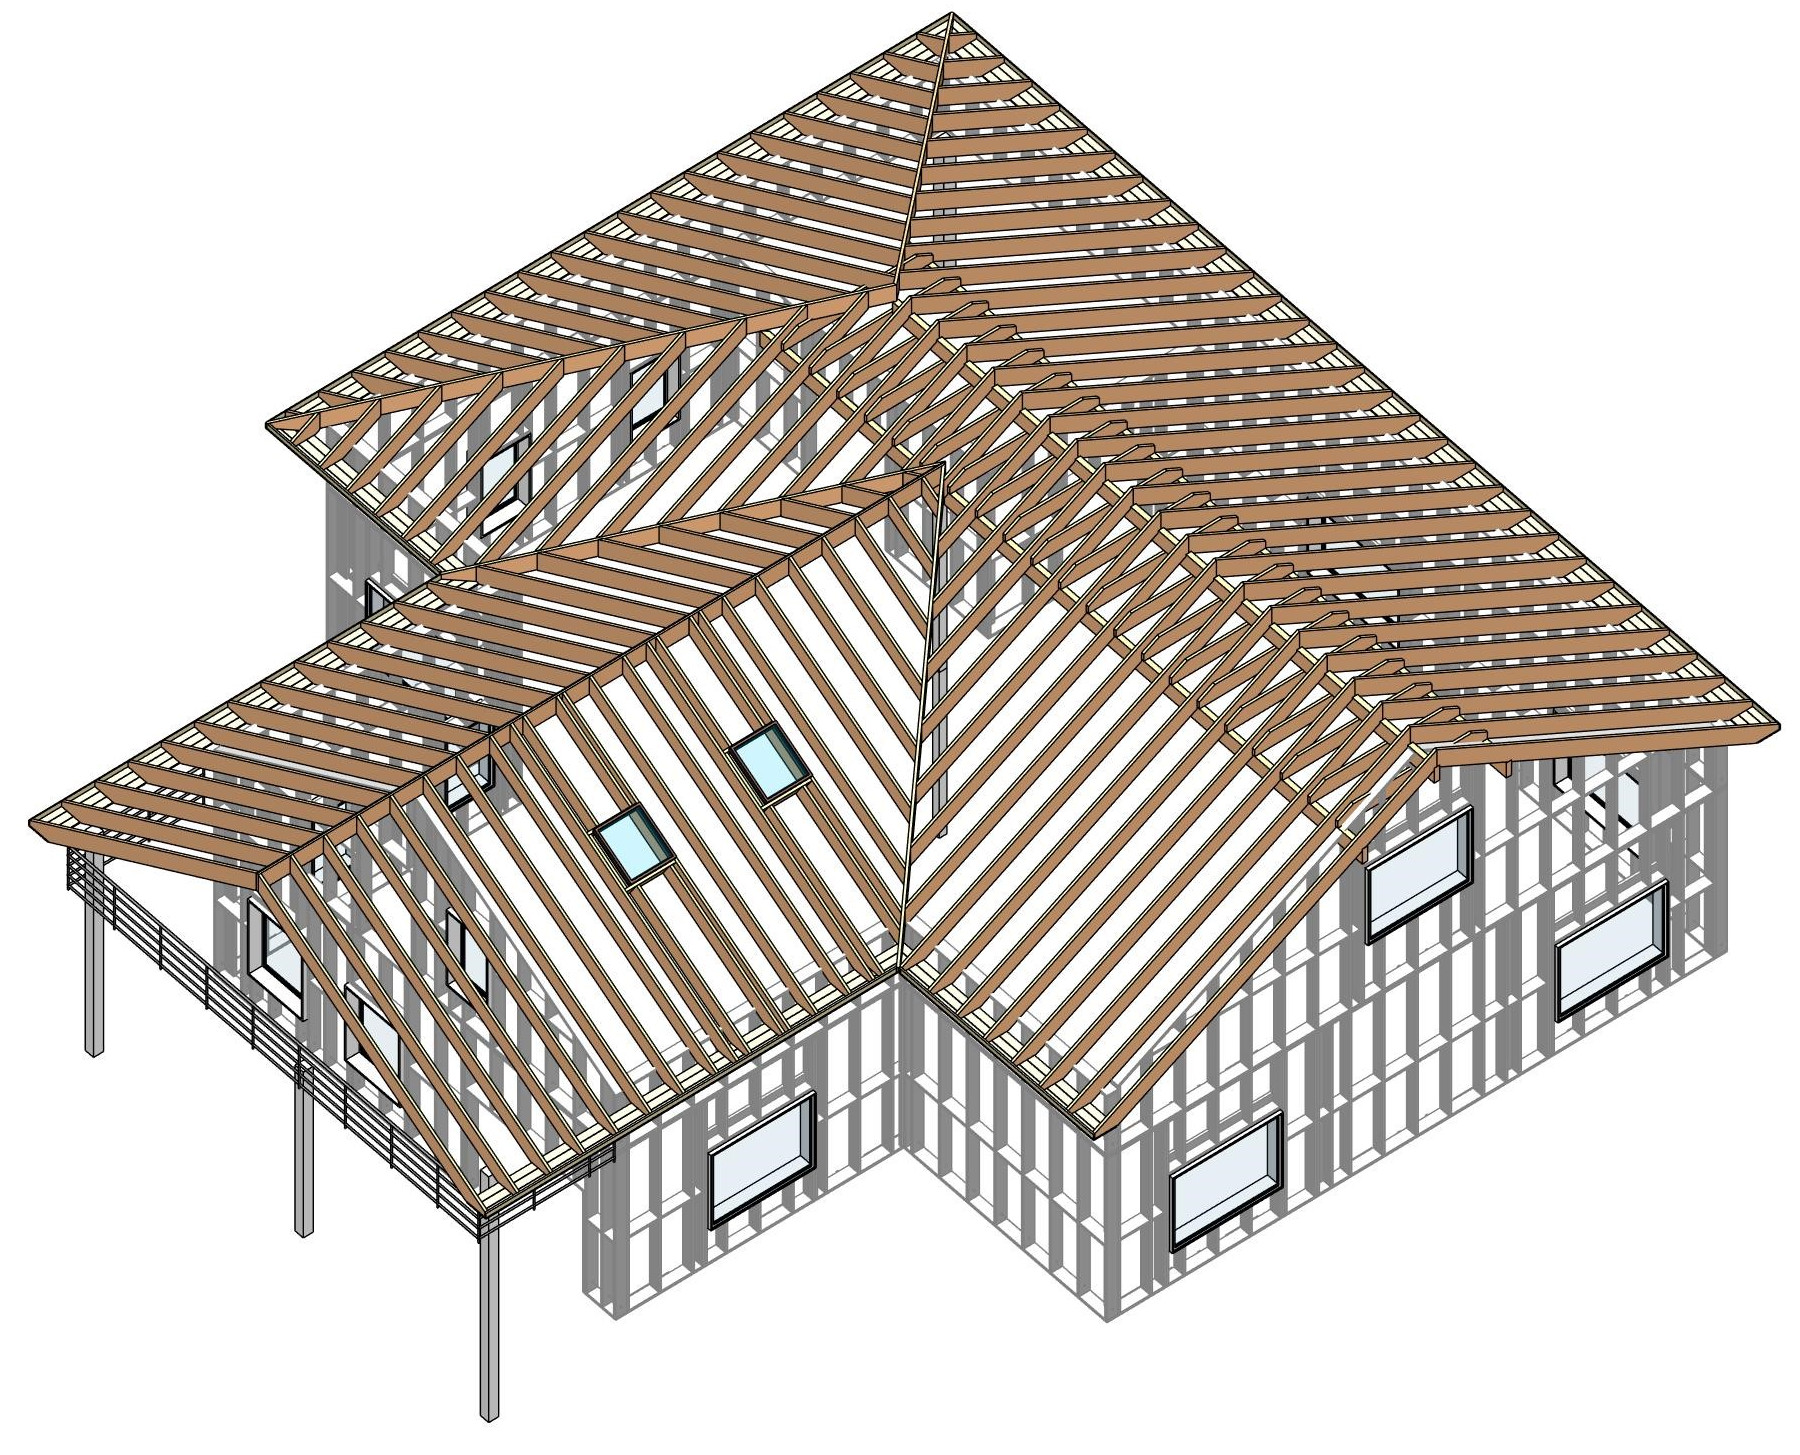 rafter roof framed in Autidesk Revit using AGACAD Roof Framing BIM tools